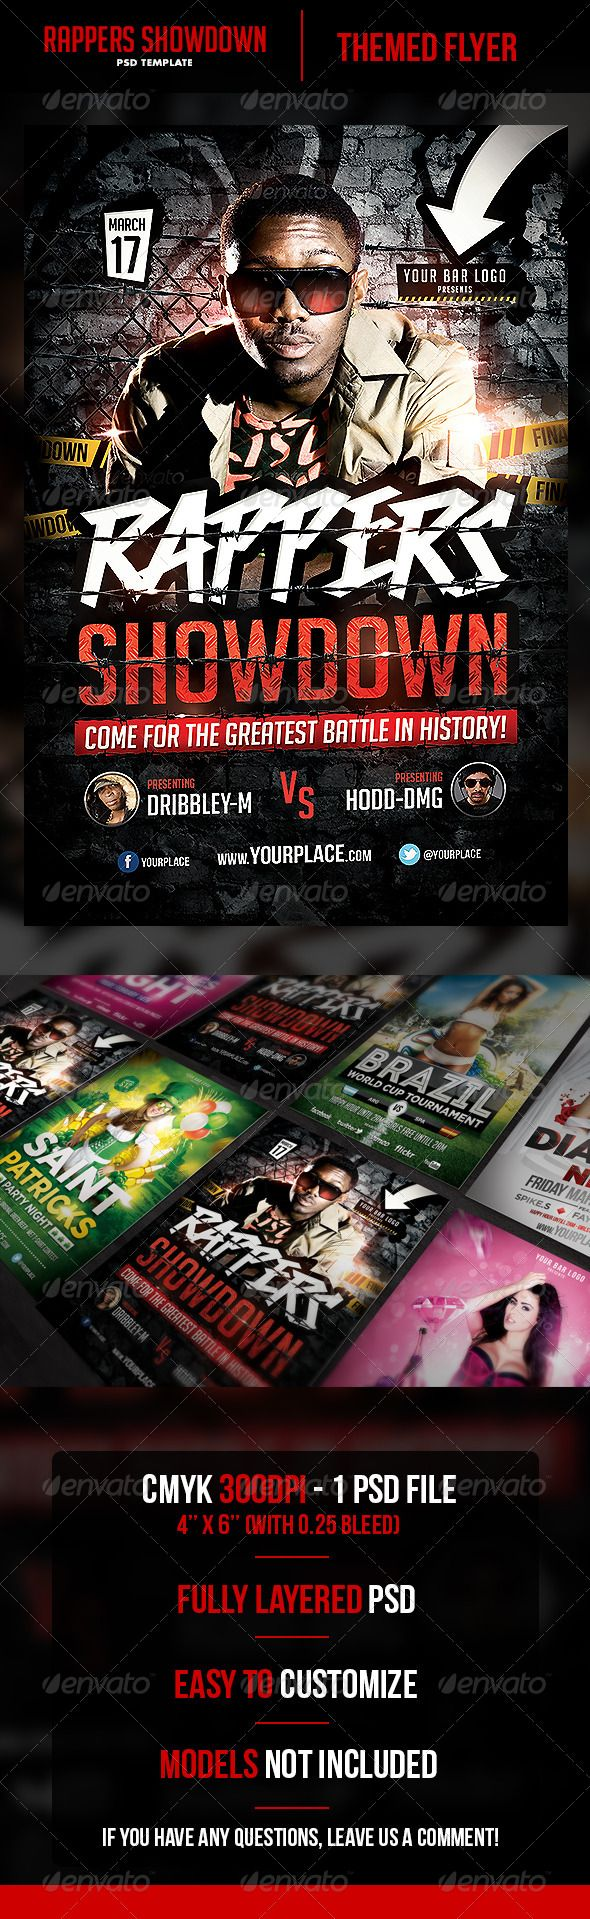 Rappers Showdown Flyer Template  Flyer Template Rapper And Print